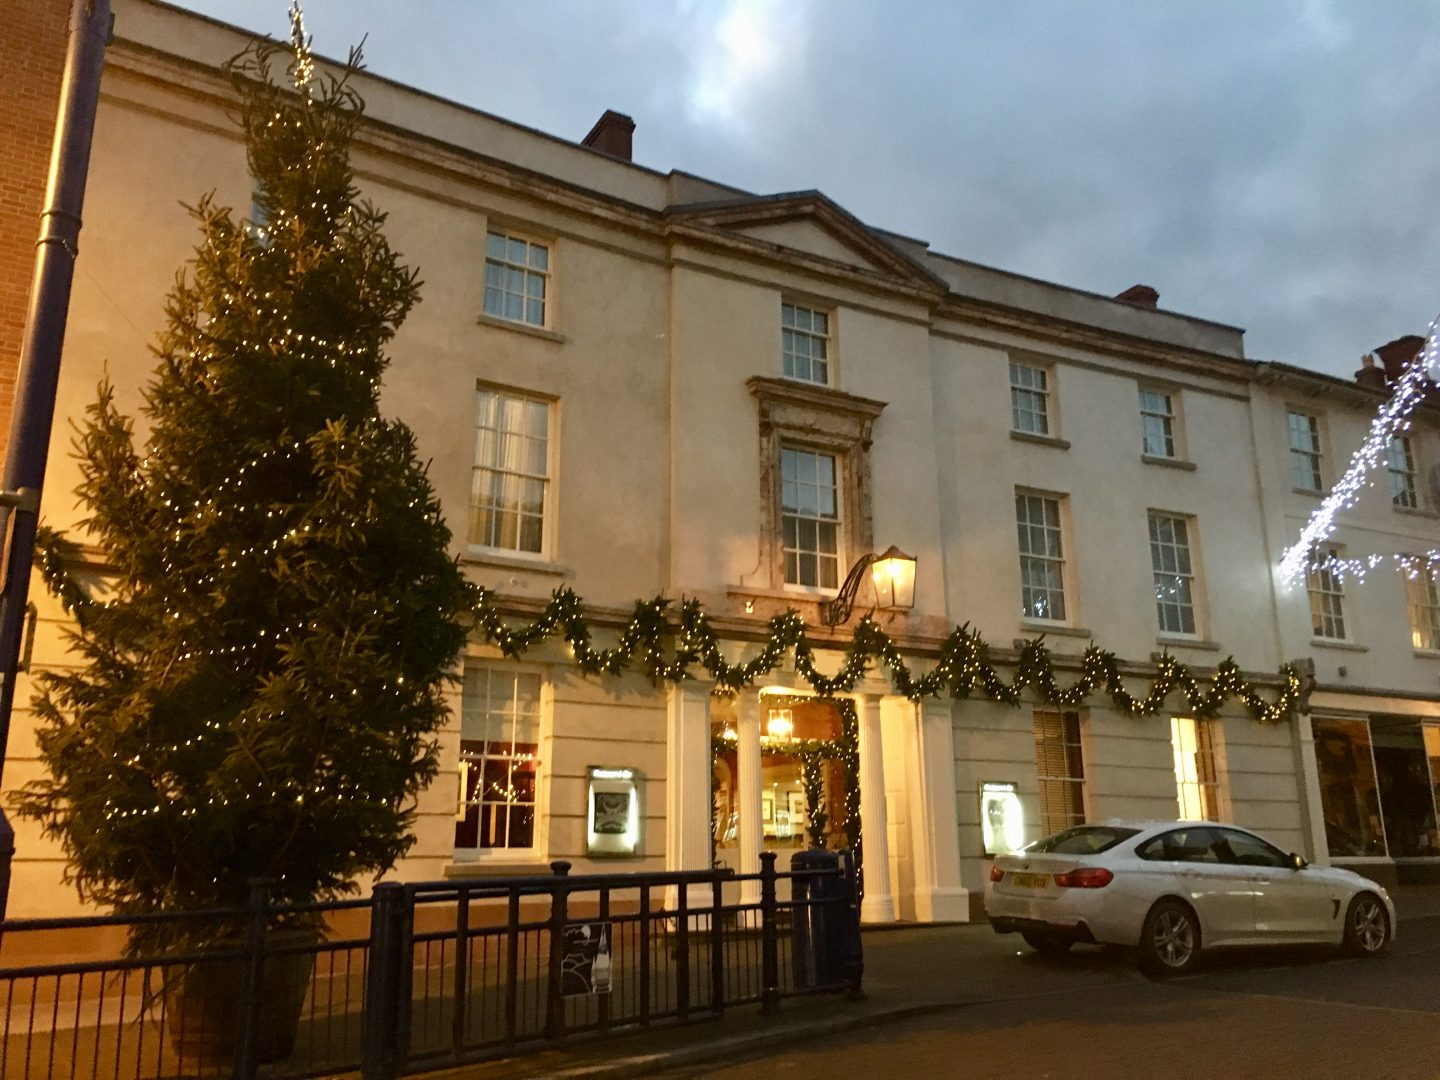 The front of the The Angel Hotel, Abergavenny, next to the Christmas tree